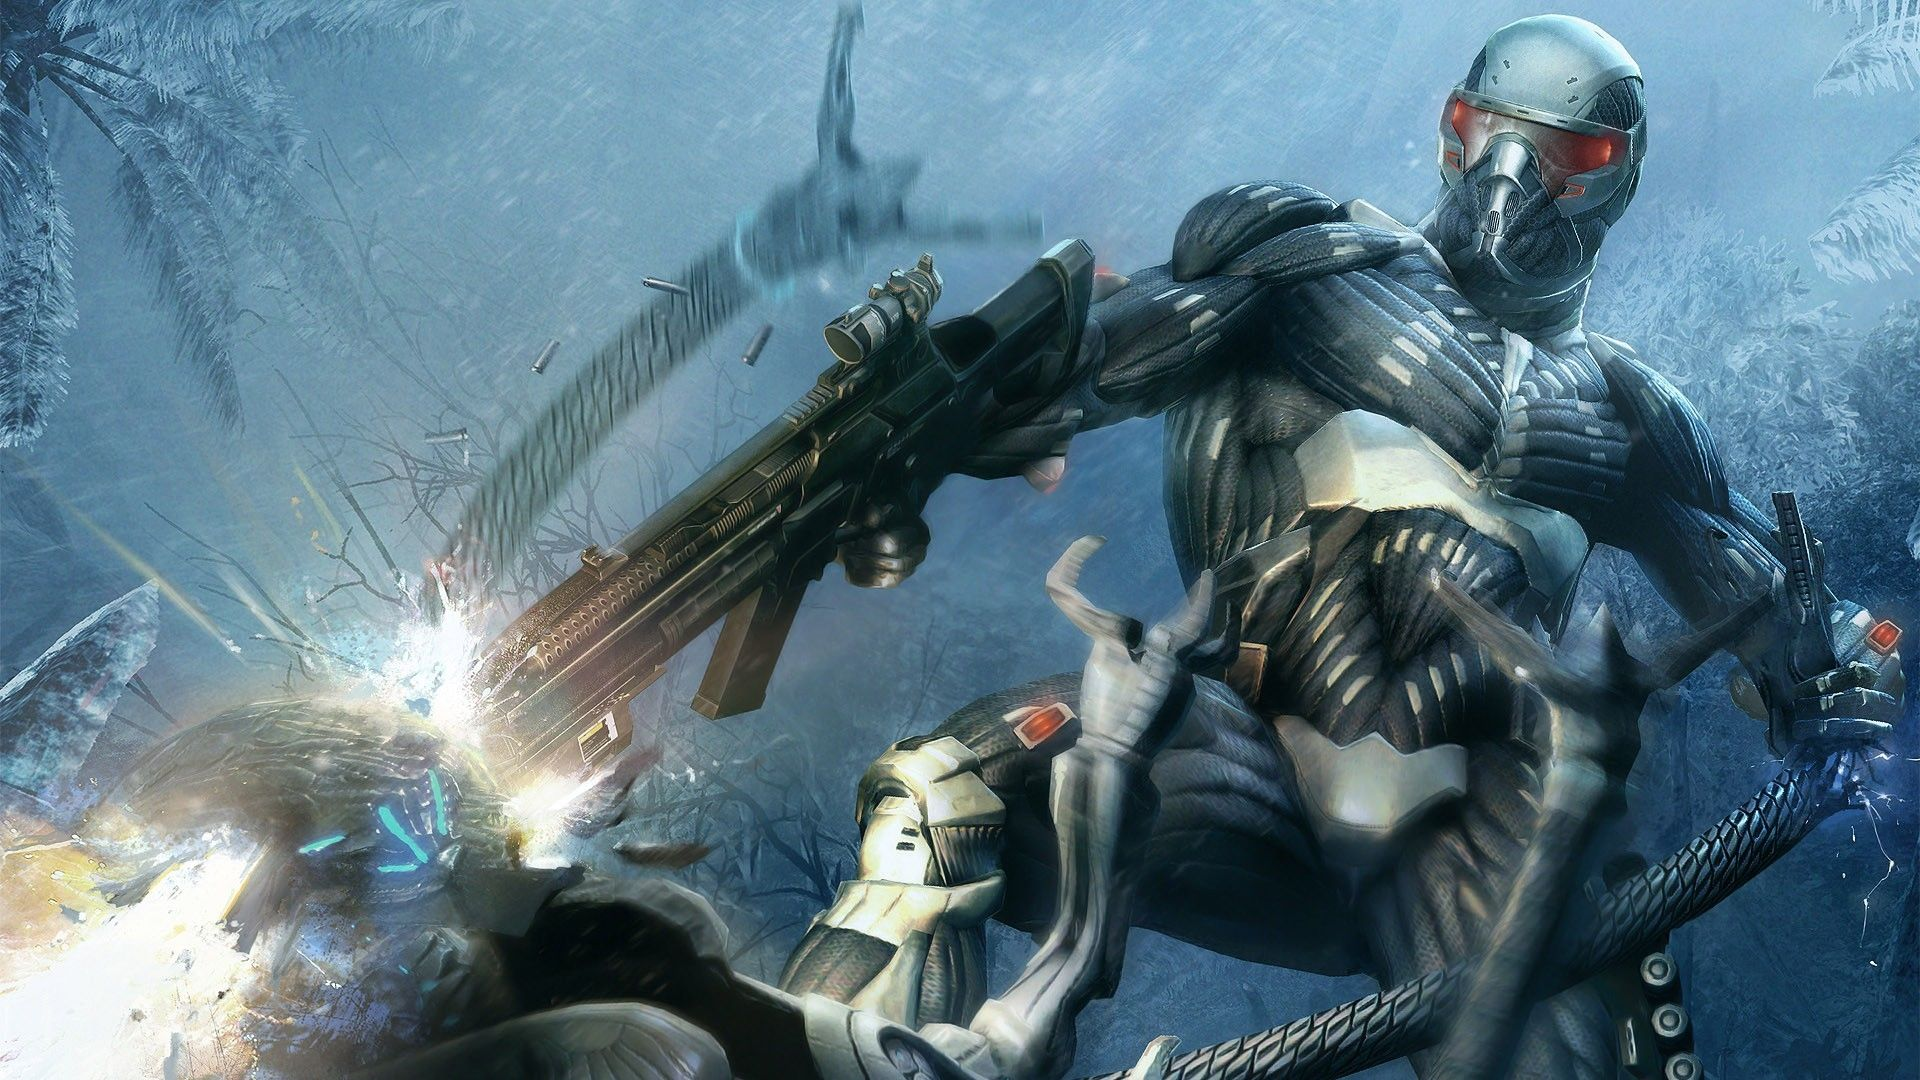 download crysis costume prophet gun monster fire alcatraz wallpaper